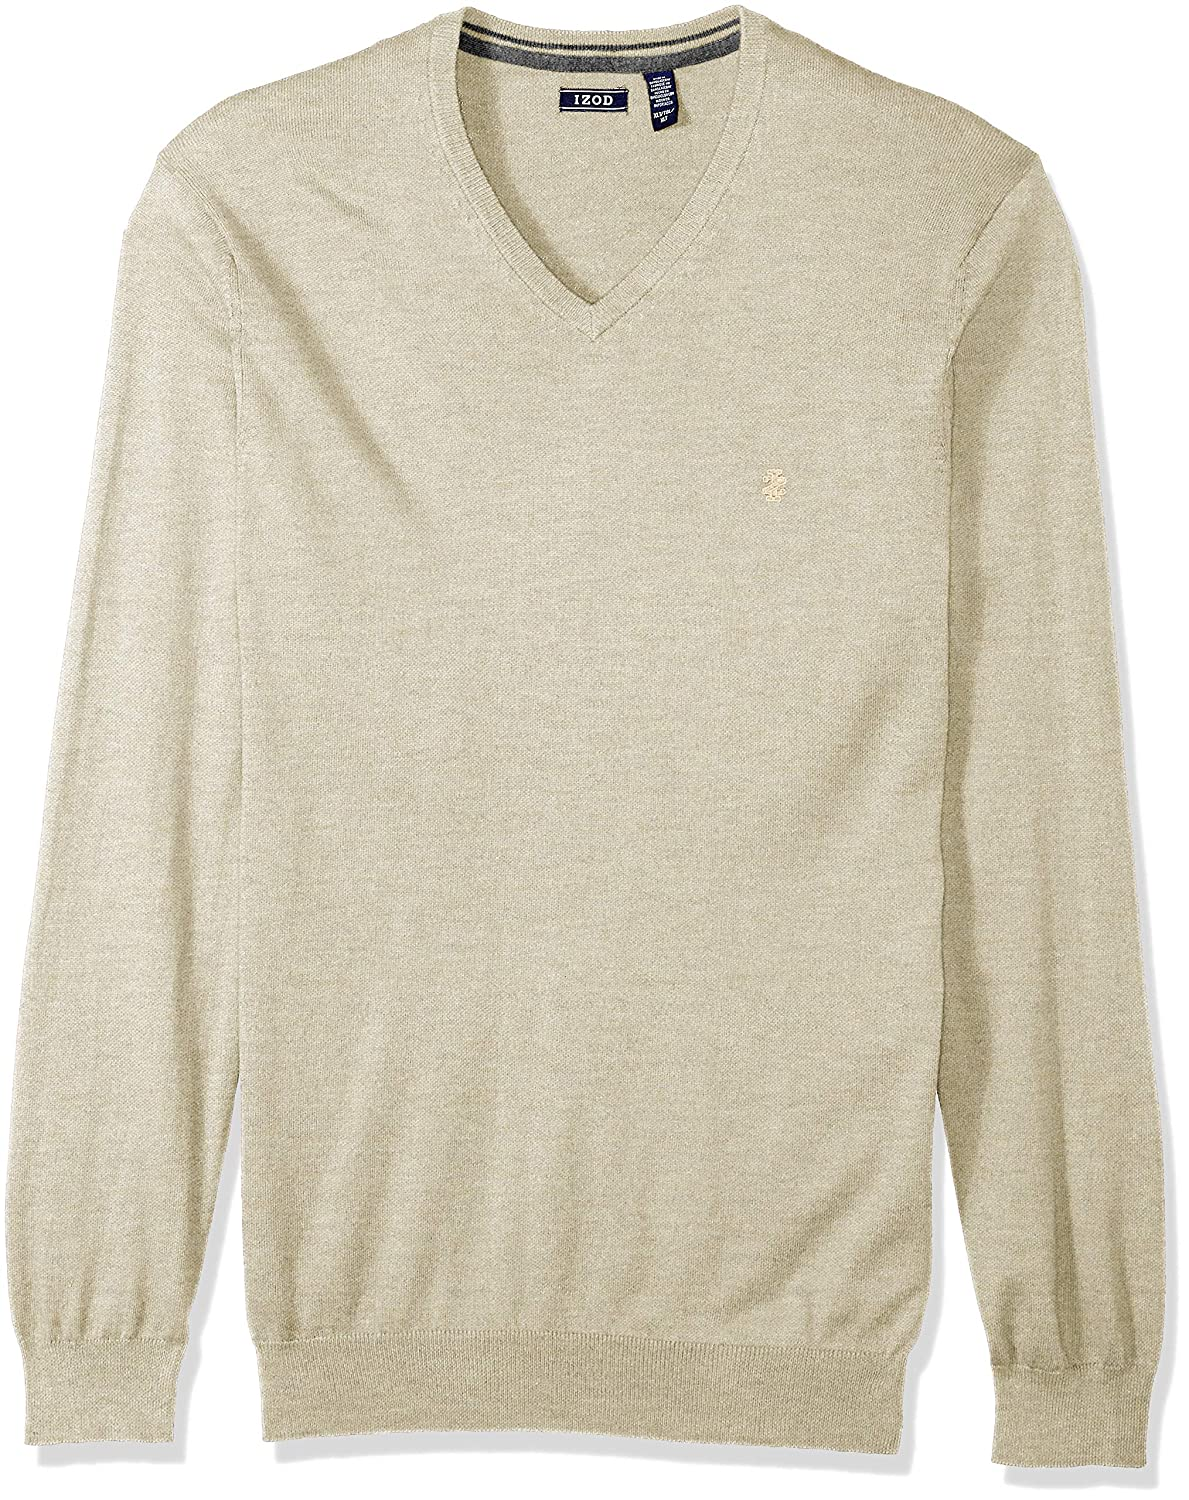 IZOD Men's Big and Tall Fine Gauge Solid V-Neck Sweater Rock Heather 4X-Large 45X2692